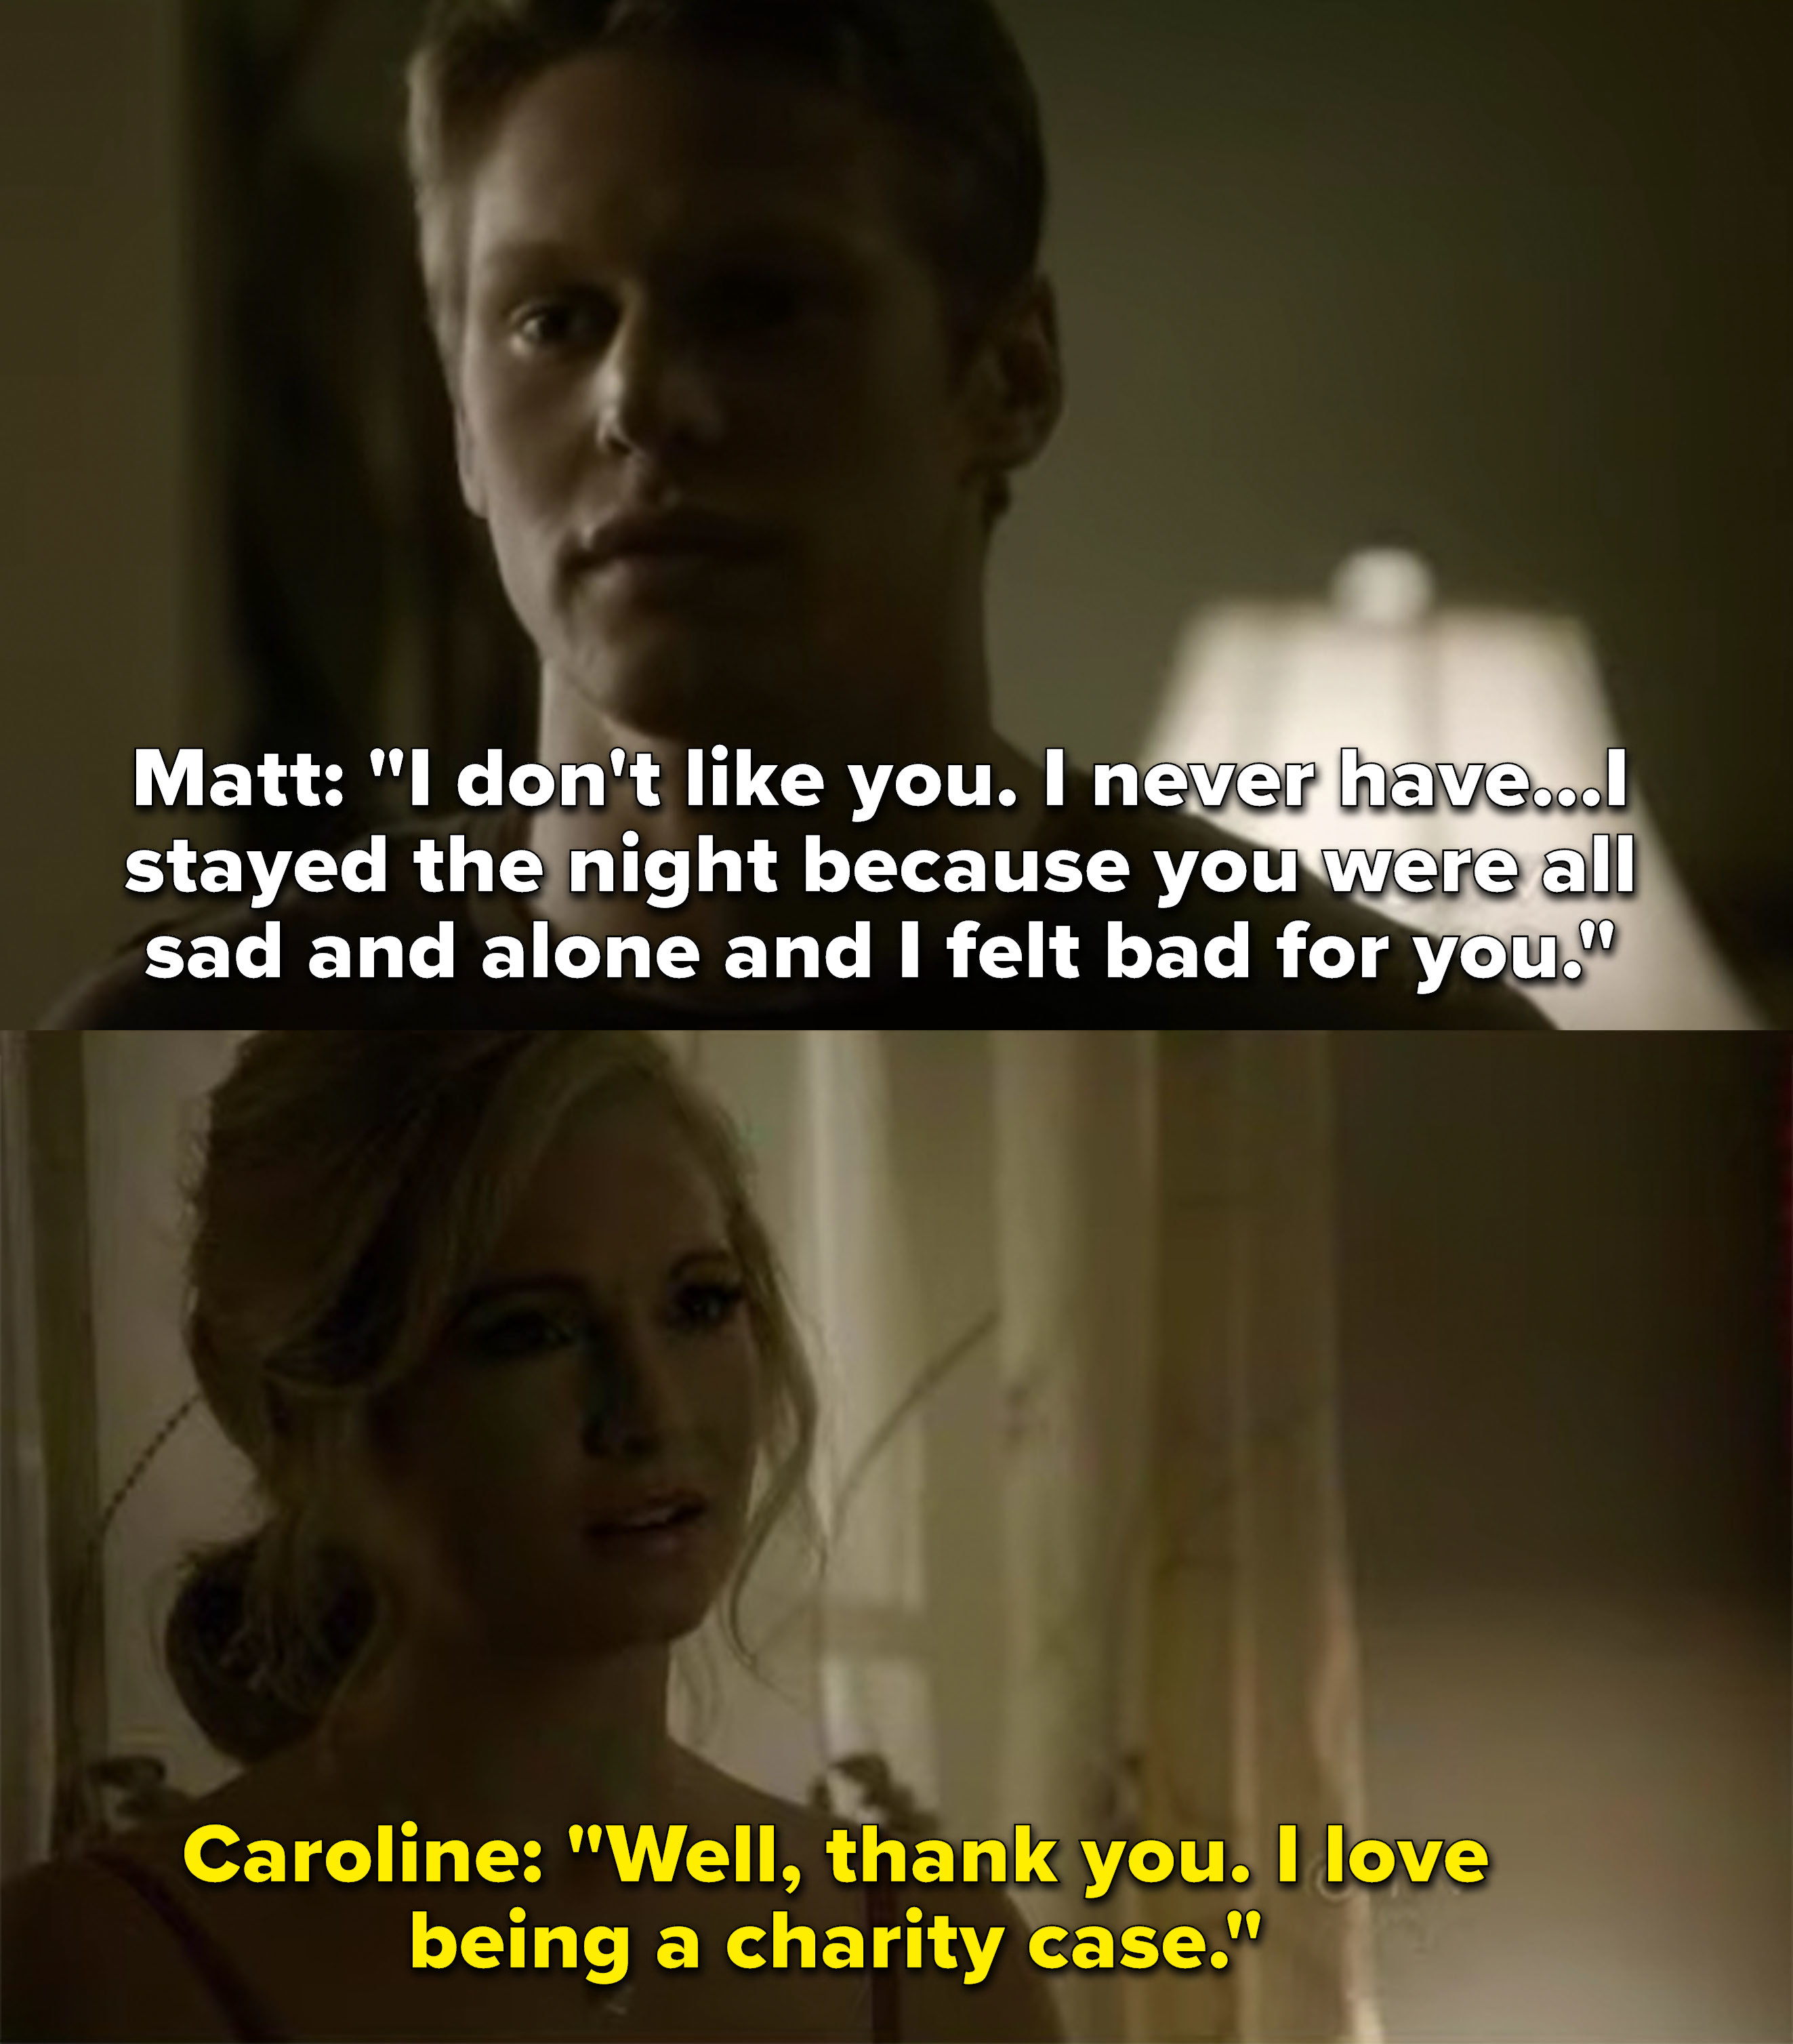 Matt tells Caroline he doesn't like her and just stayed the night because he felt bad for her